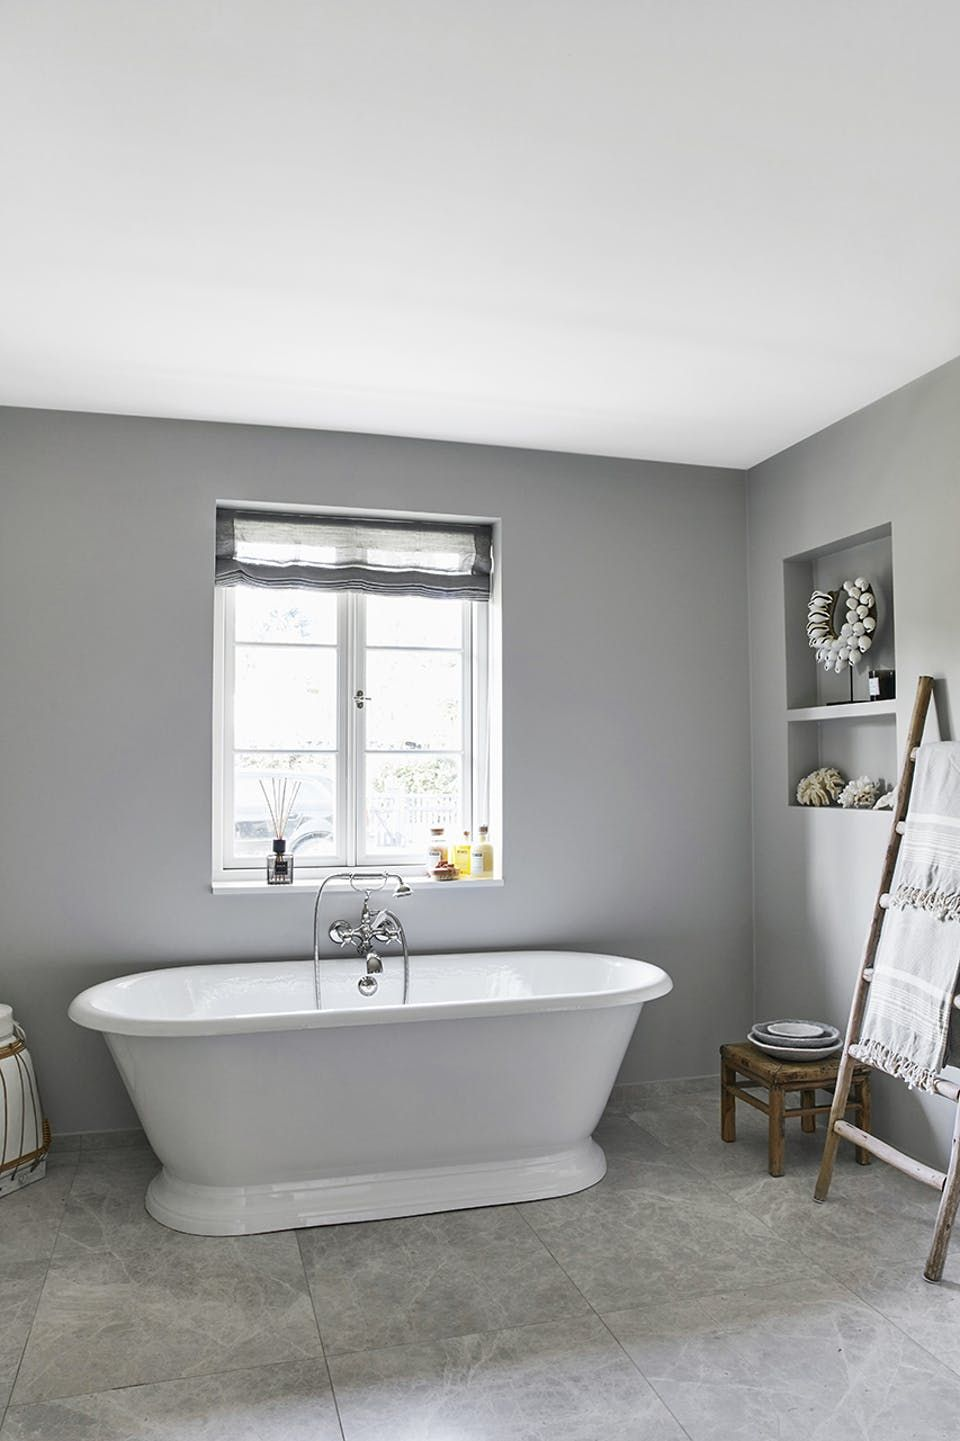 Its possible to soak in the bathtub while enjoying the view of the ...